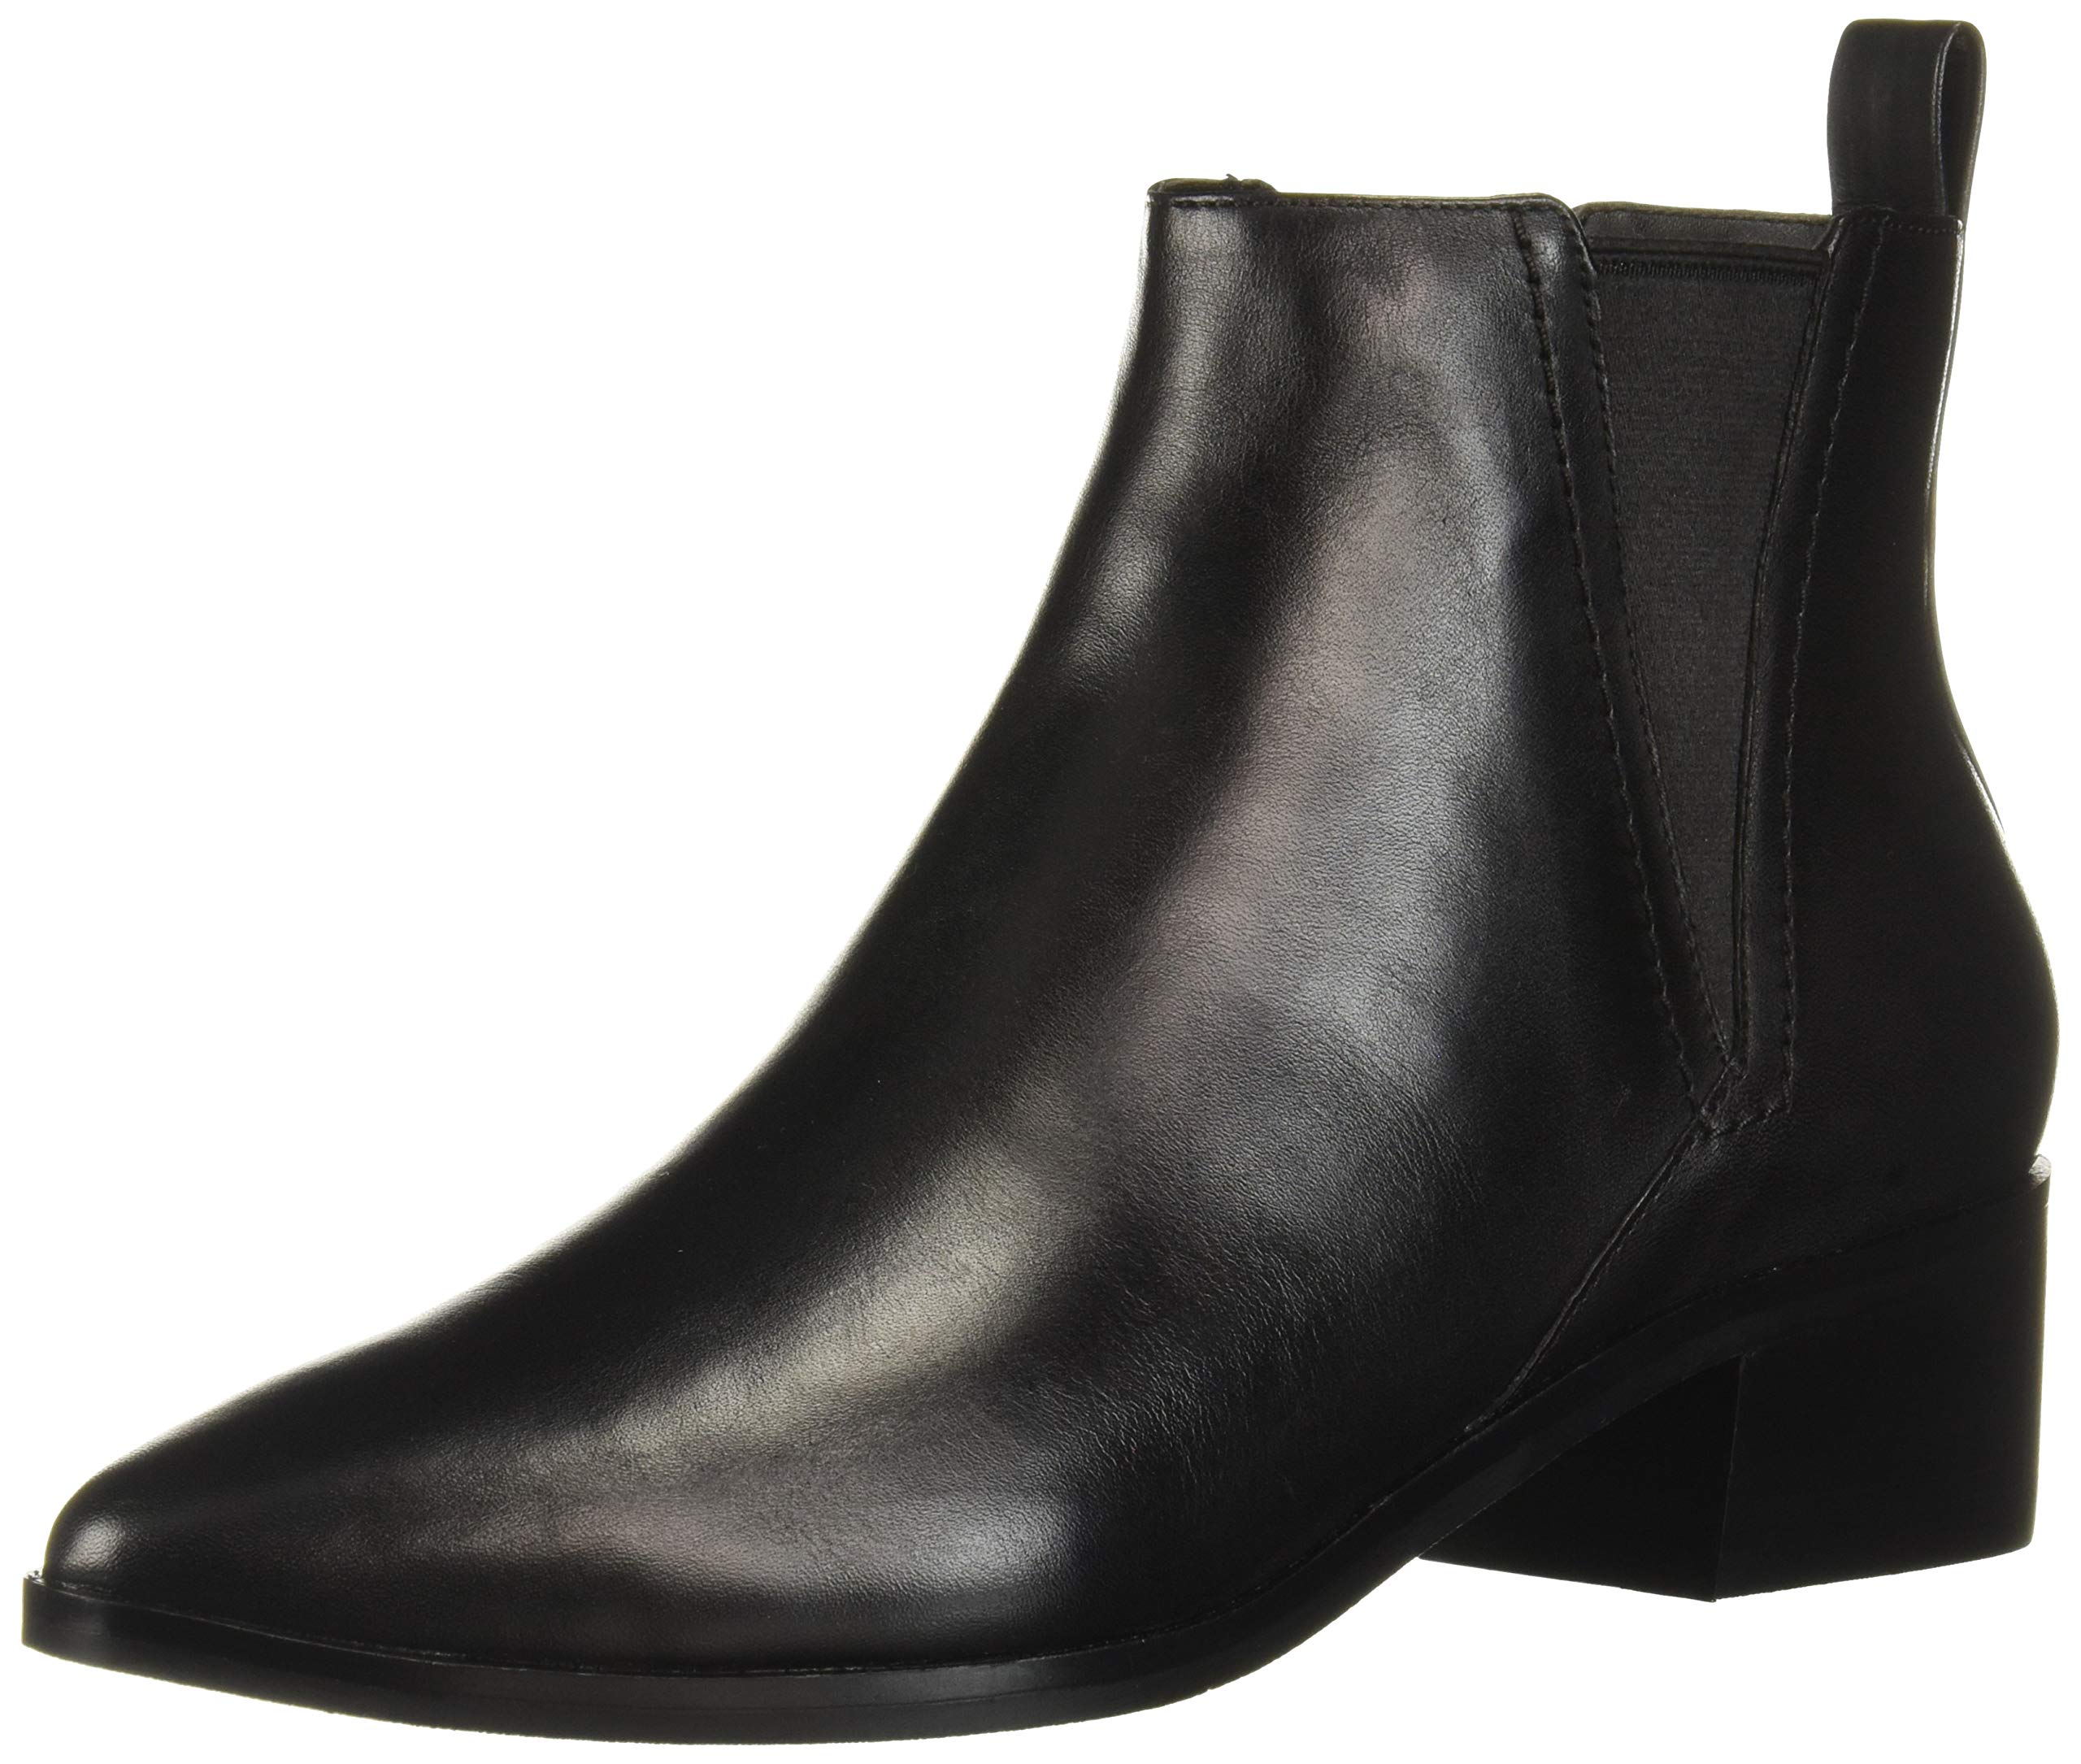 Cole Haan Women's Marinne Bootie 45Mm Ankle Boot, Black Leather, 10.5 B US by Cole Haan